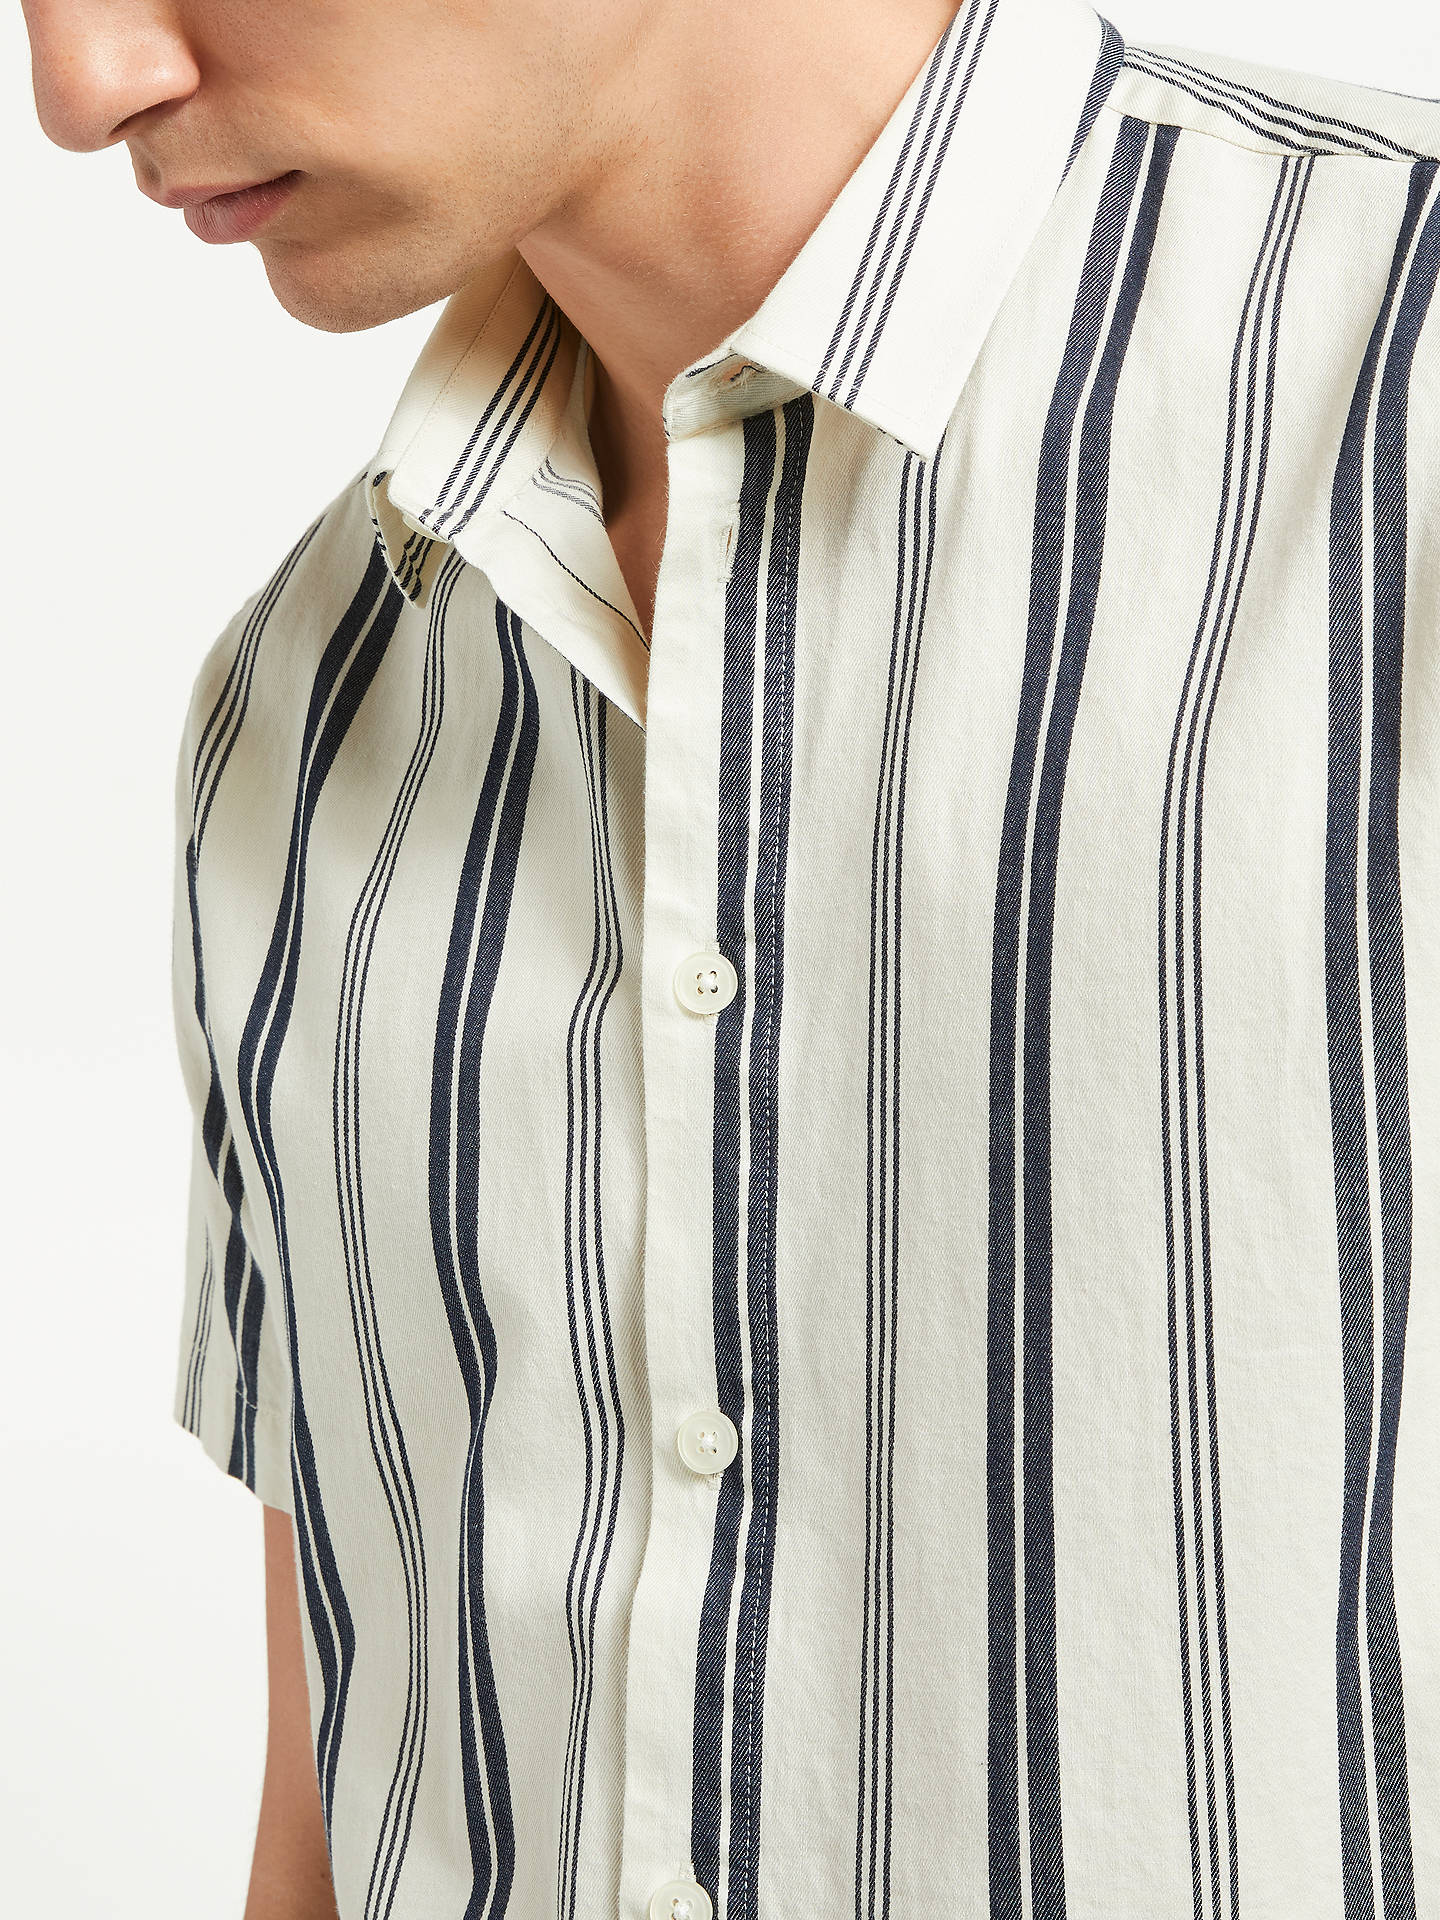 Buy Samsoe & Samsoe Vento Contrast Stripe Short Sleeve Shirt, Clear Cream, M Online at johnlewis.com